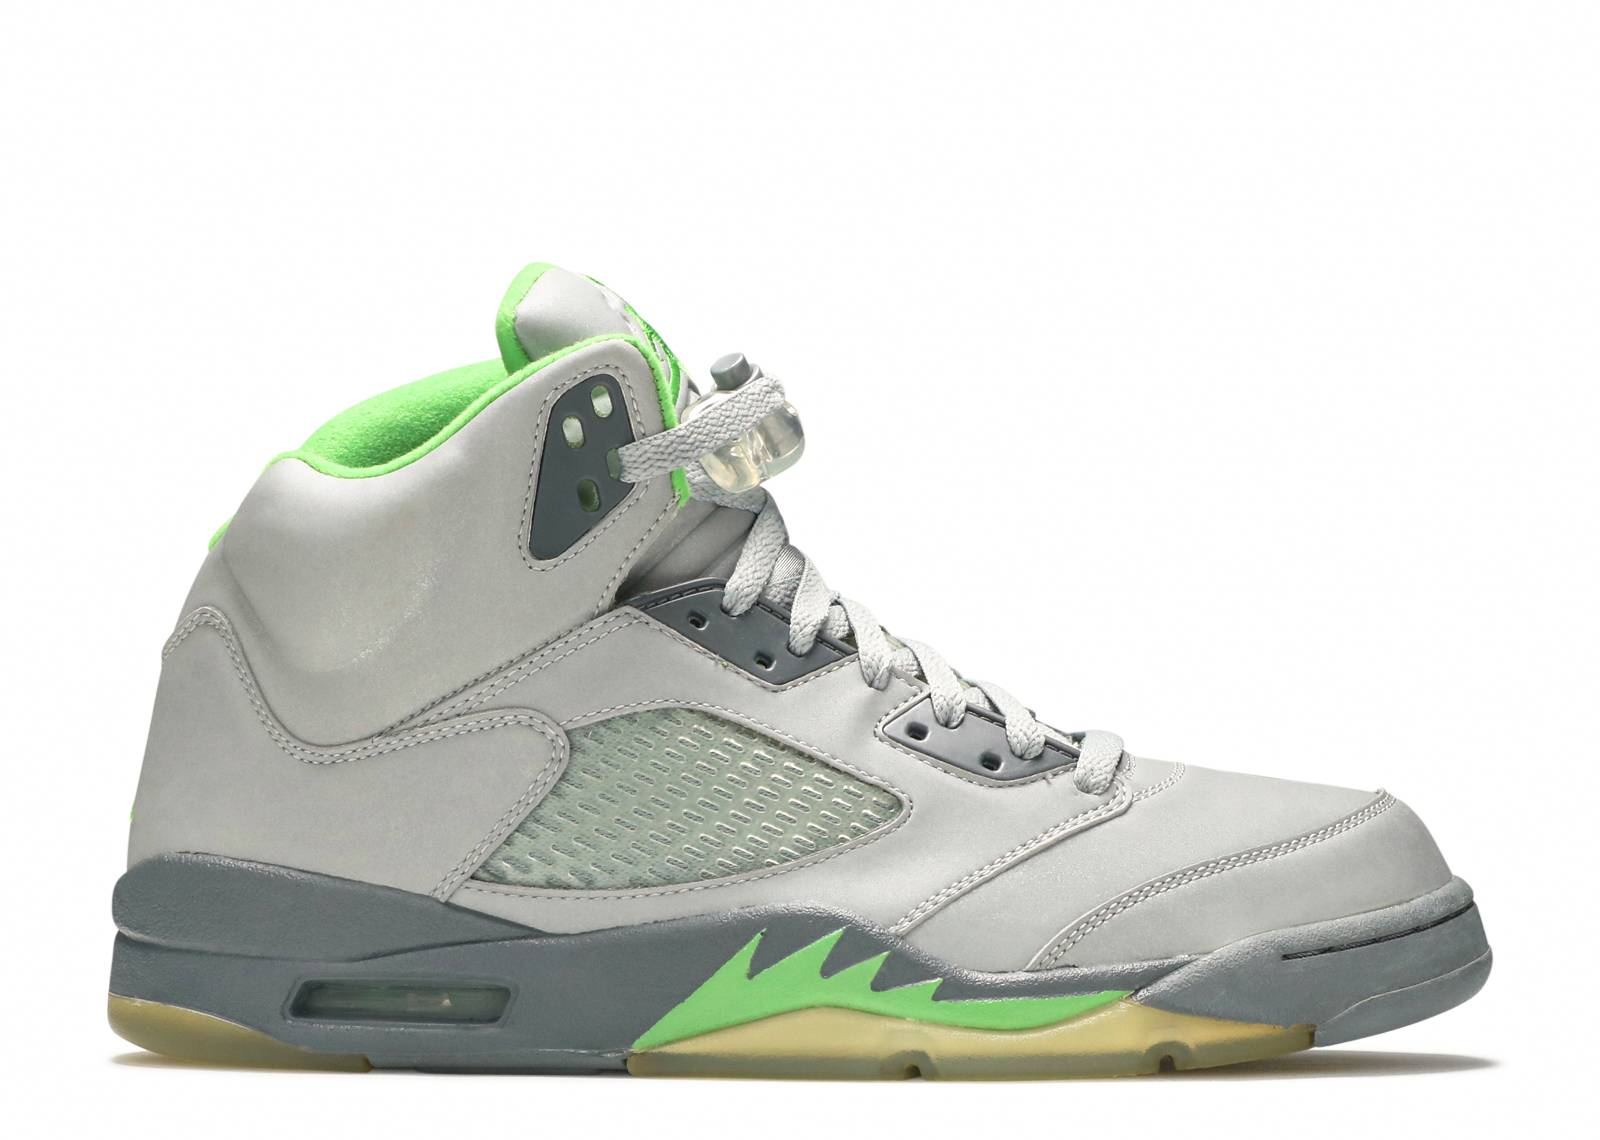 f897ded562fdfb Air Jordan 5 Retro